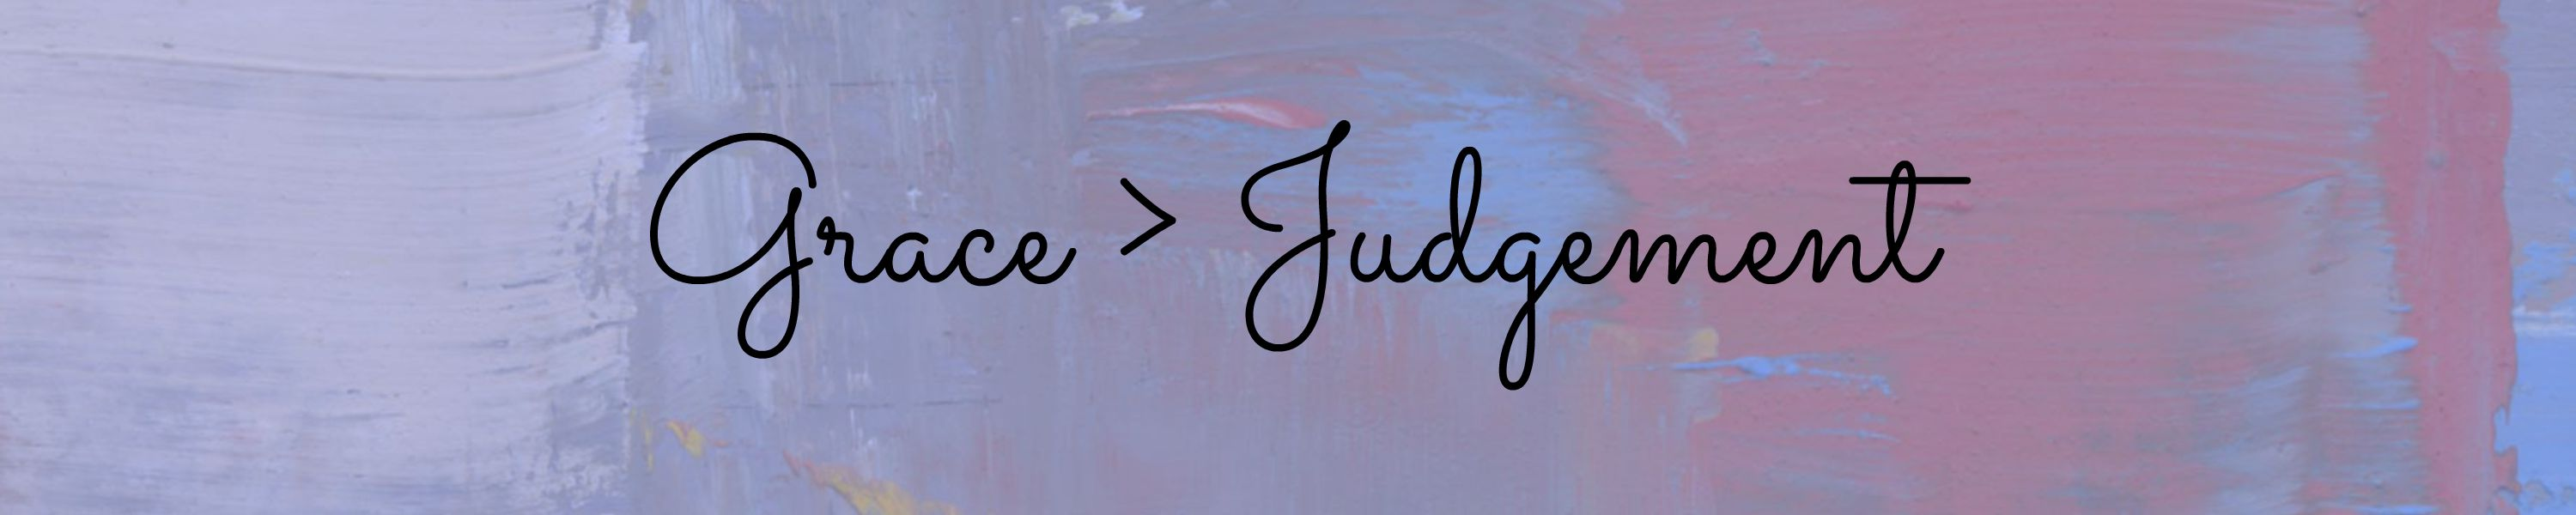 Grace > Judgement: Why Condemnation Doesn't Work